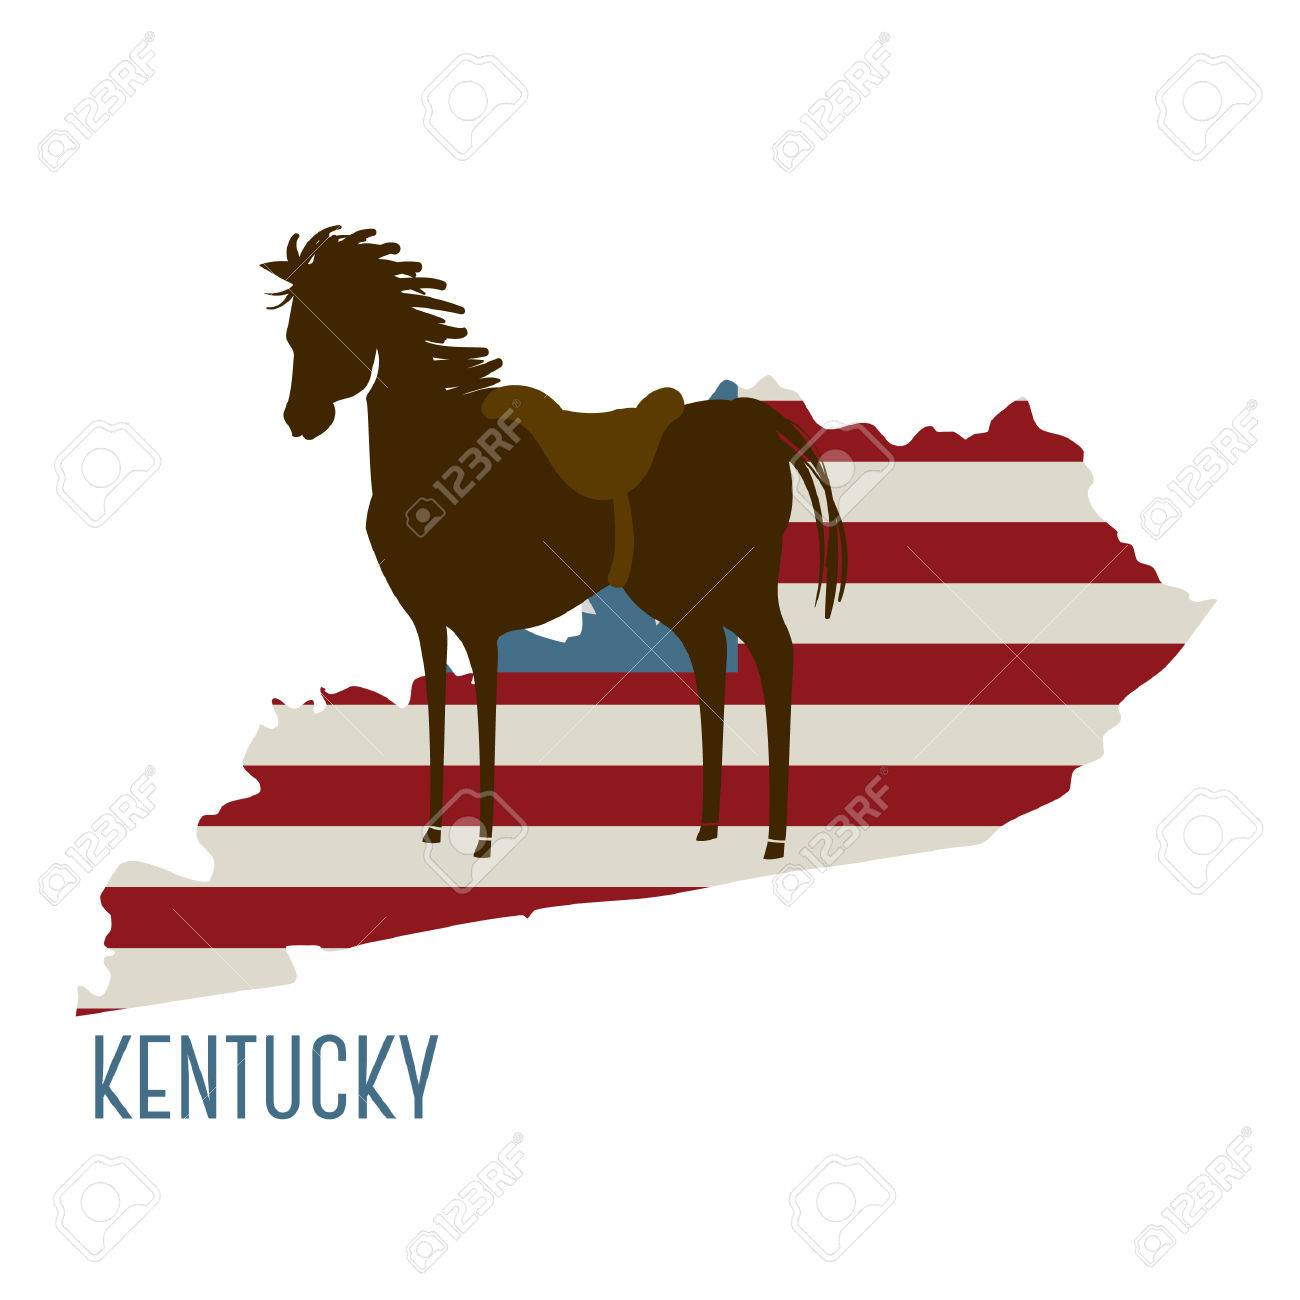 kentucky state map with horse on kentucky map outline, kentucky map 3d, kentucky map coloring sheets, kentucky map clipart, kentucky state bird cartoon, kentucky derby cartoon, kentucky map drawing, home cartoon,